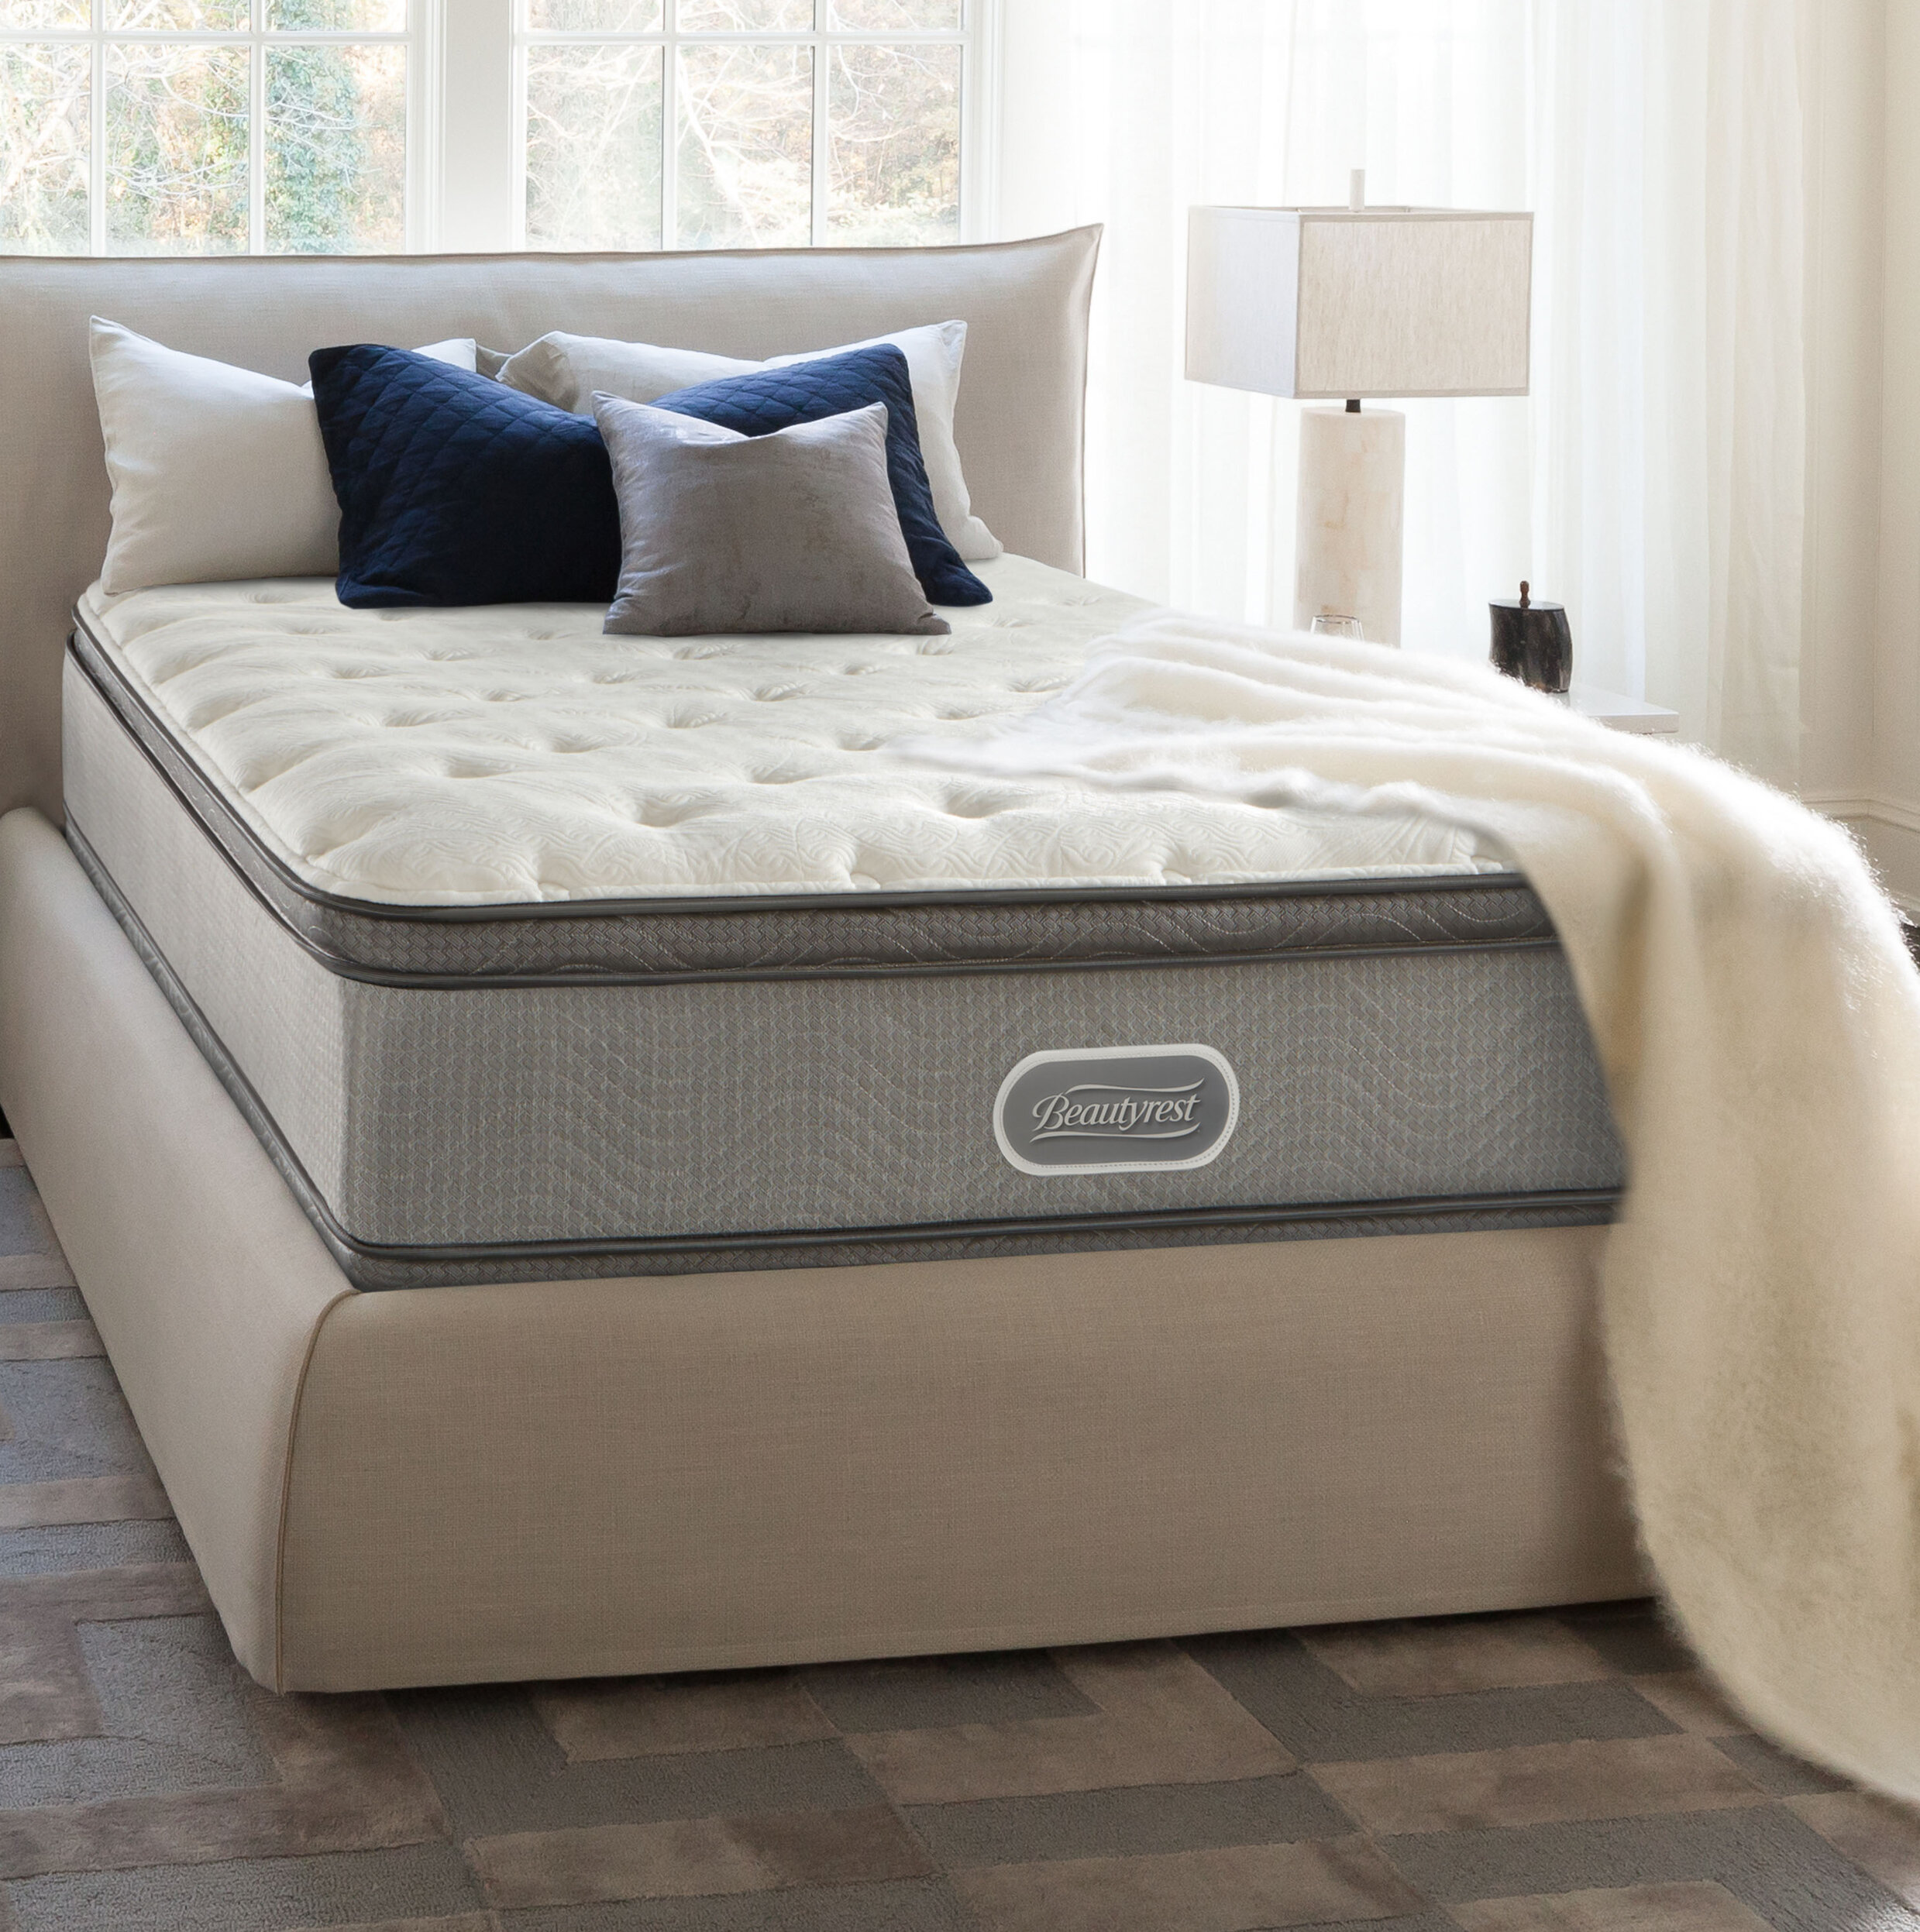 q beautysleep pillow mattress sleep topper sun top city shop plush plpt valley simmons silo